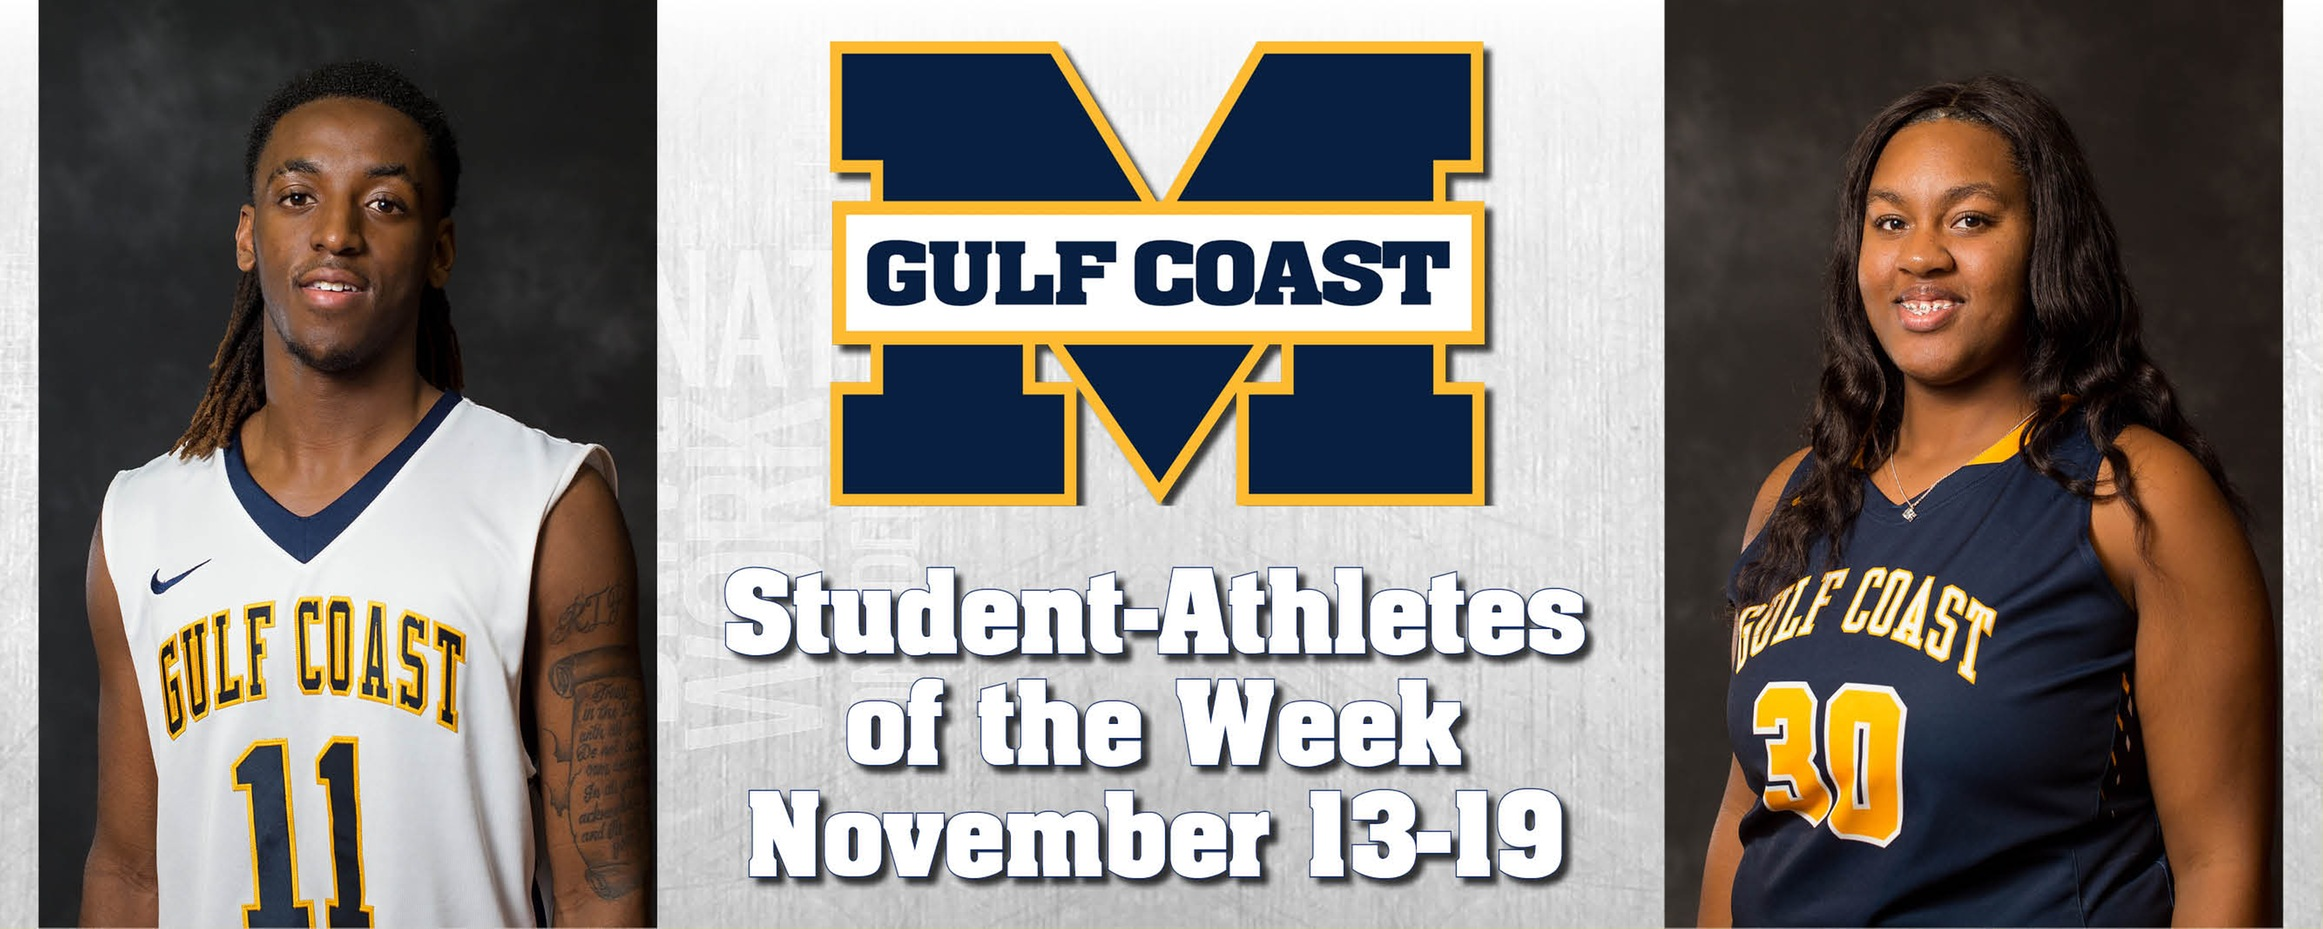 Spivery, Howard named MGCCC Student-Athletes of the Week